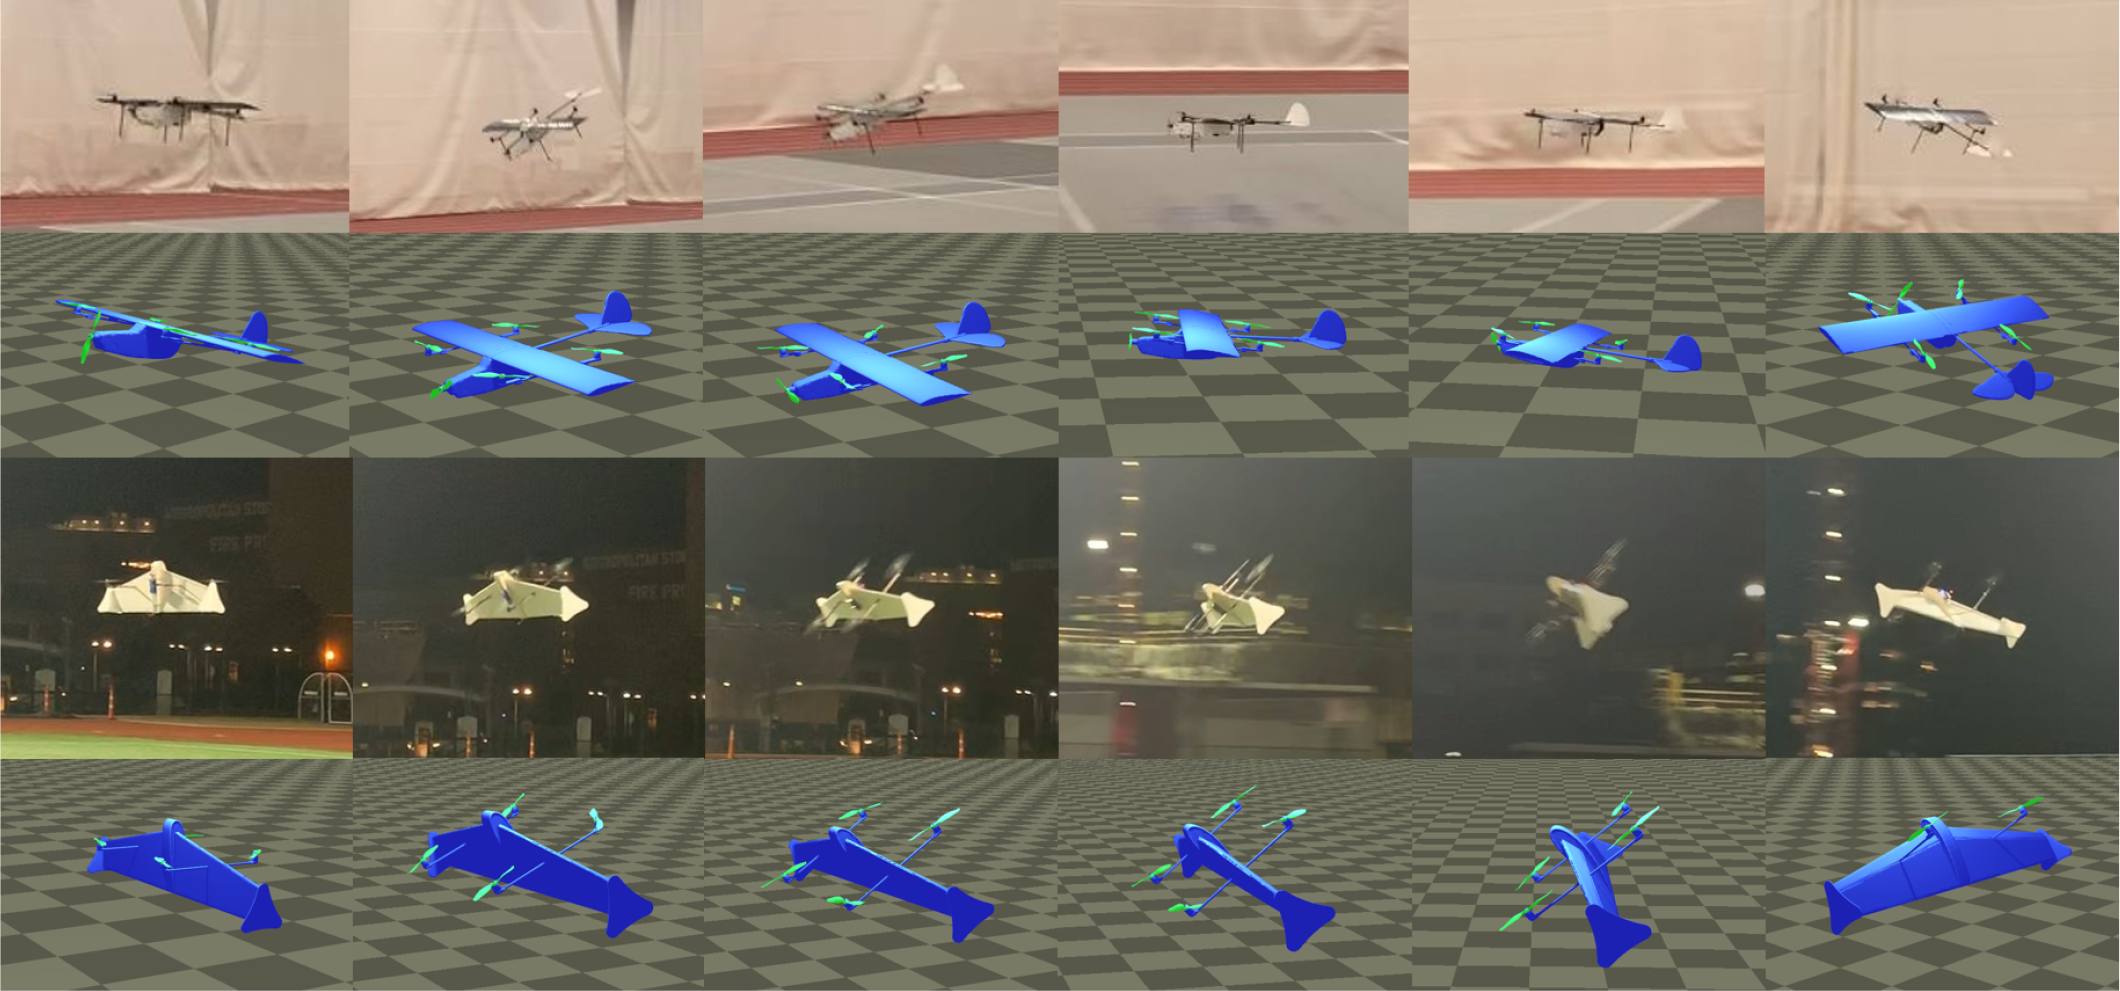 design your own drone with computer simulation